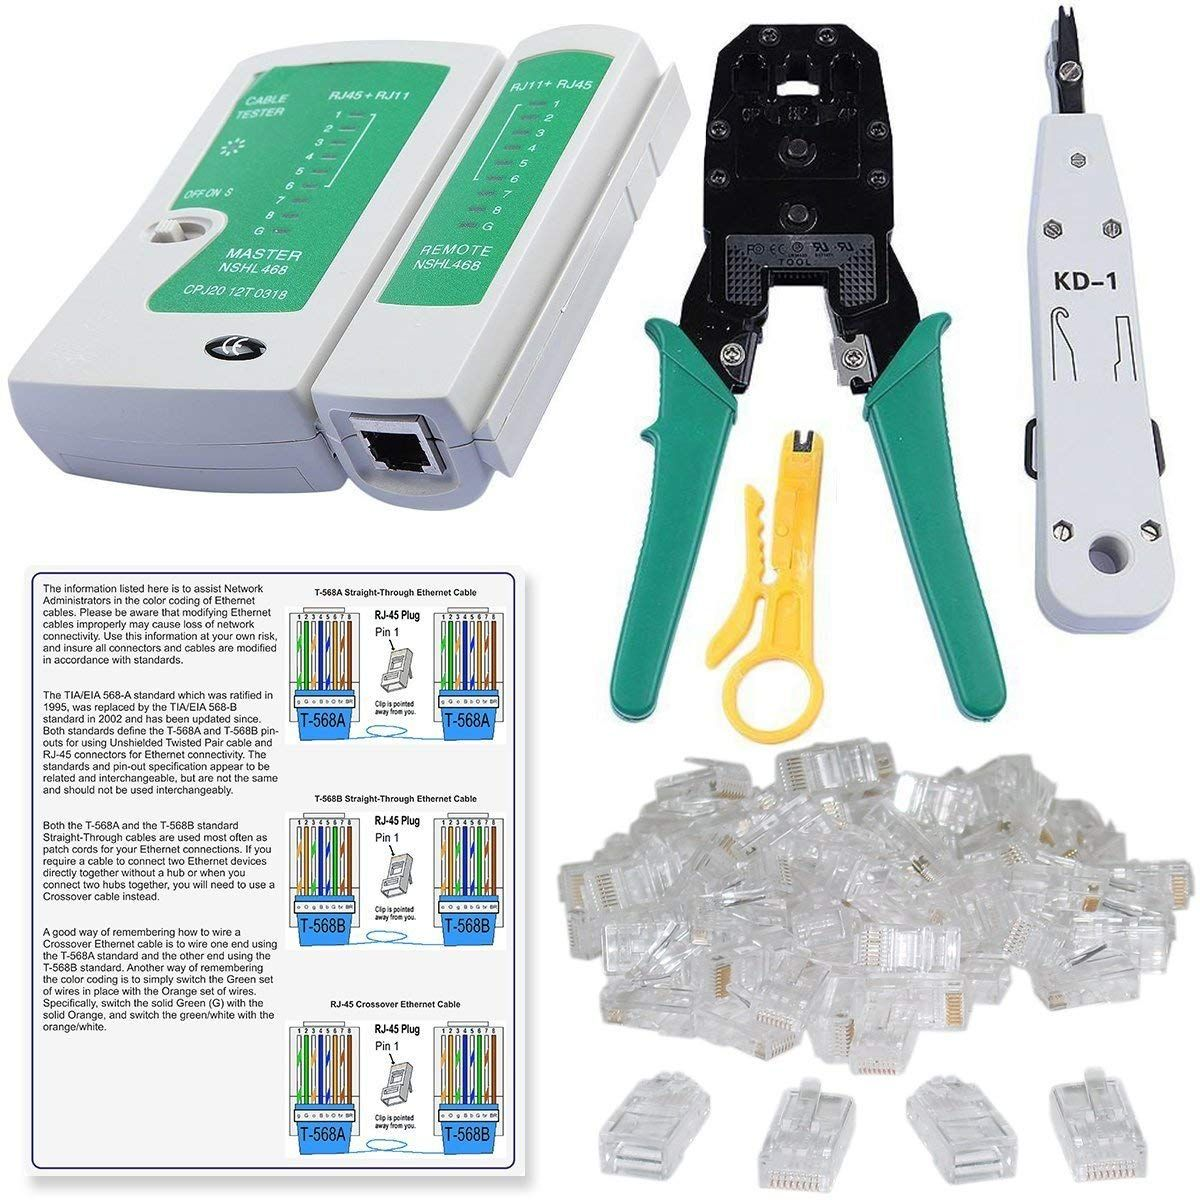 medium resolution of shopee rj45 rj11 crimping tool kd 1 professional punch down lan cable tester ethernet colour coding and 20 pieces connectors combo set